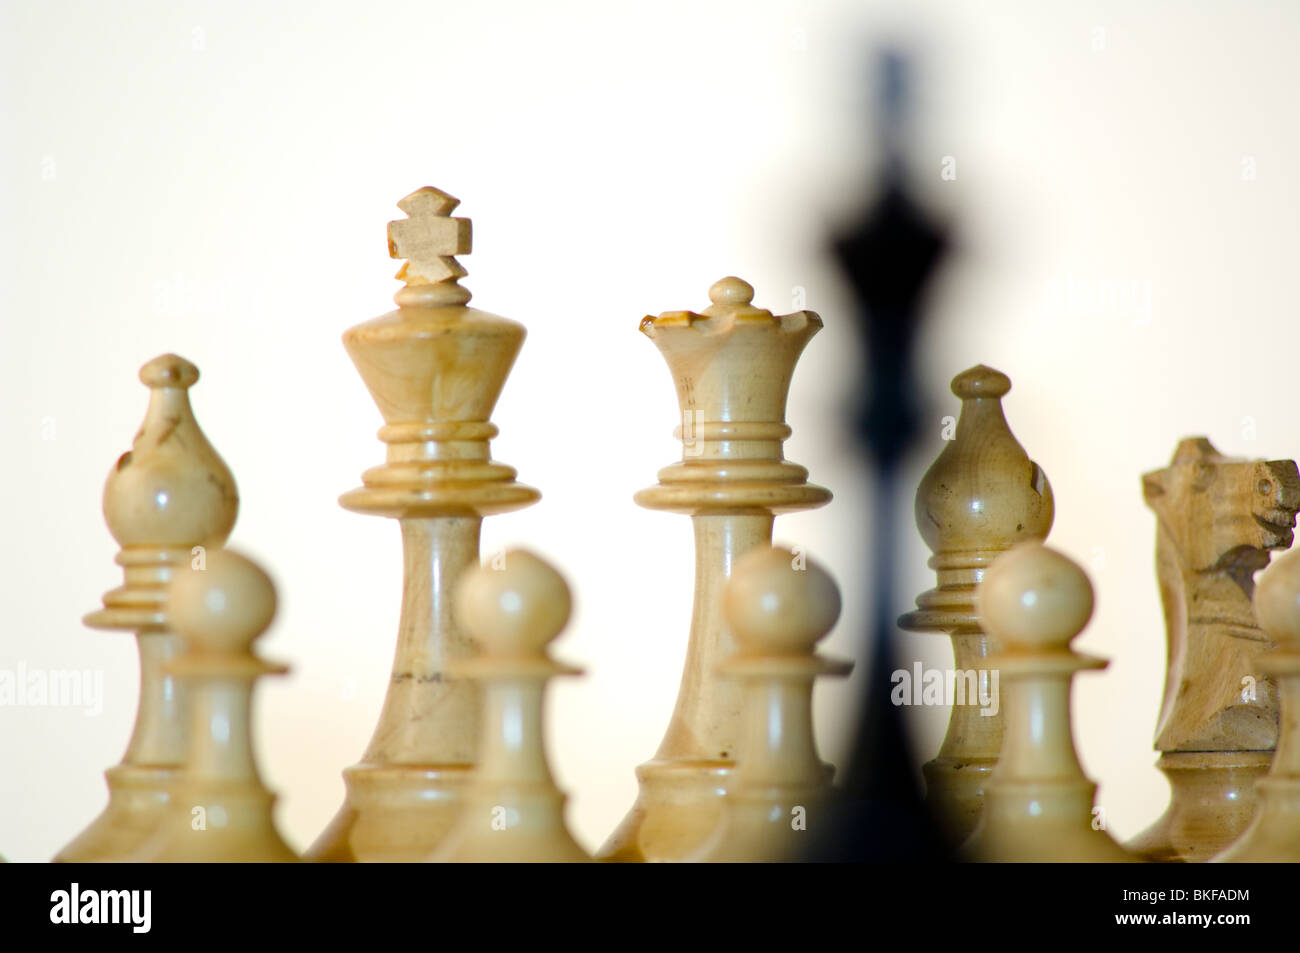 Échecs, roi noir in front of white chess pieces on chess board Banque D'Images